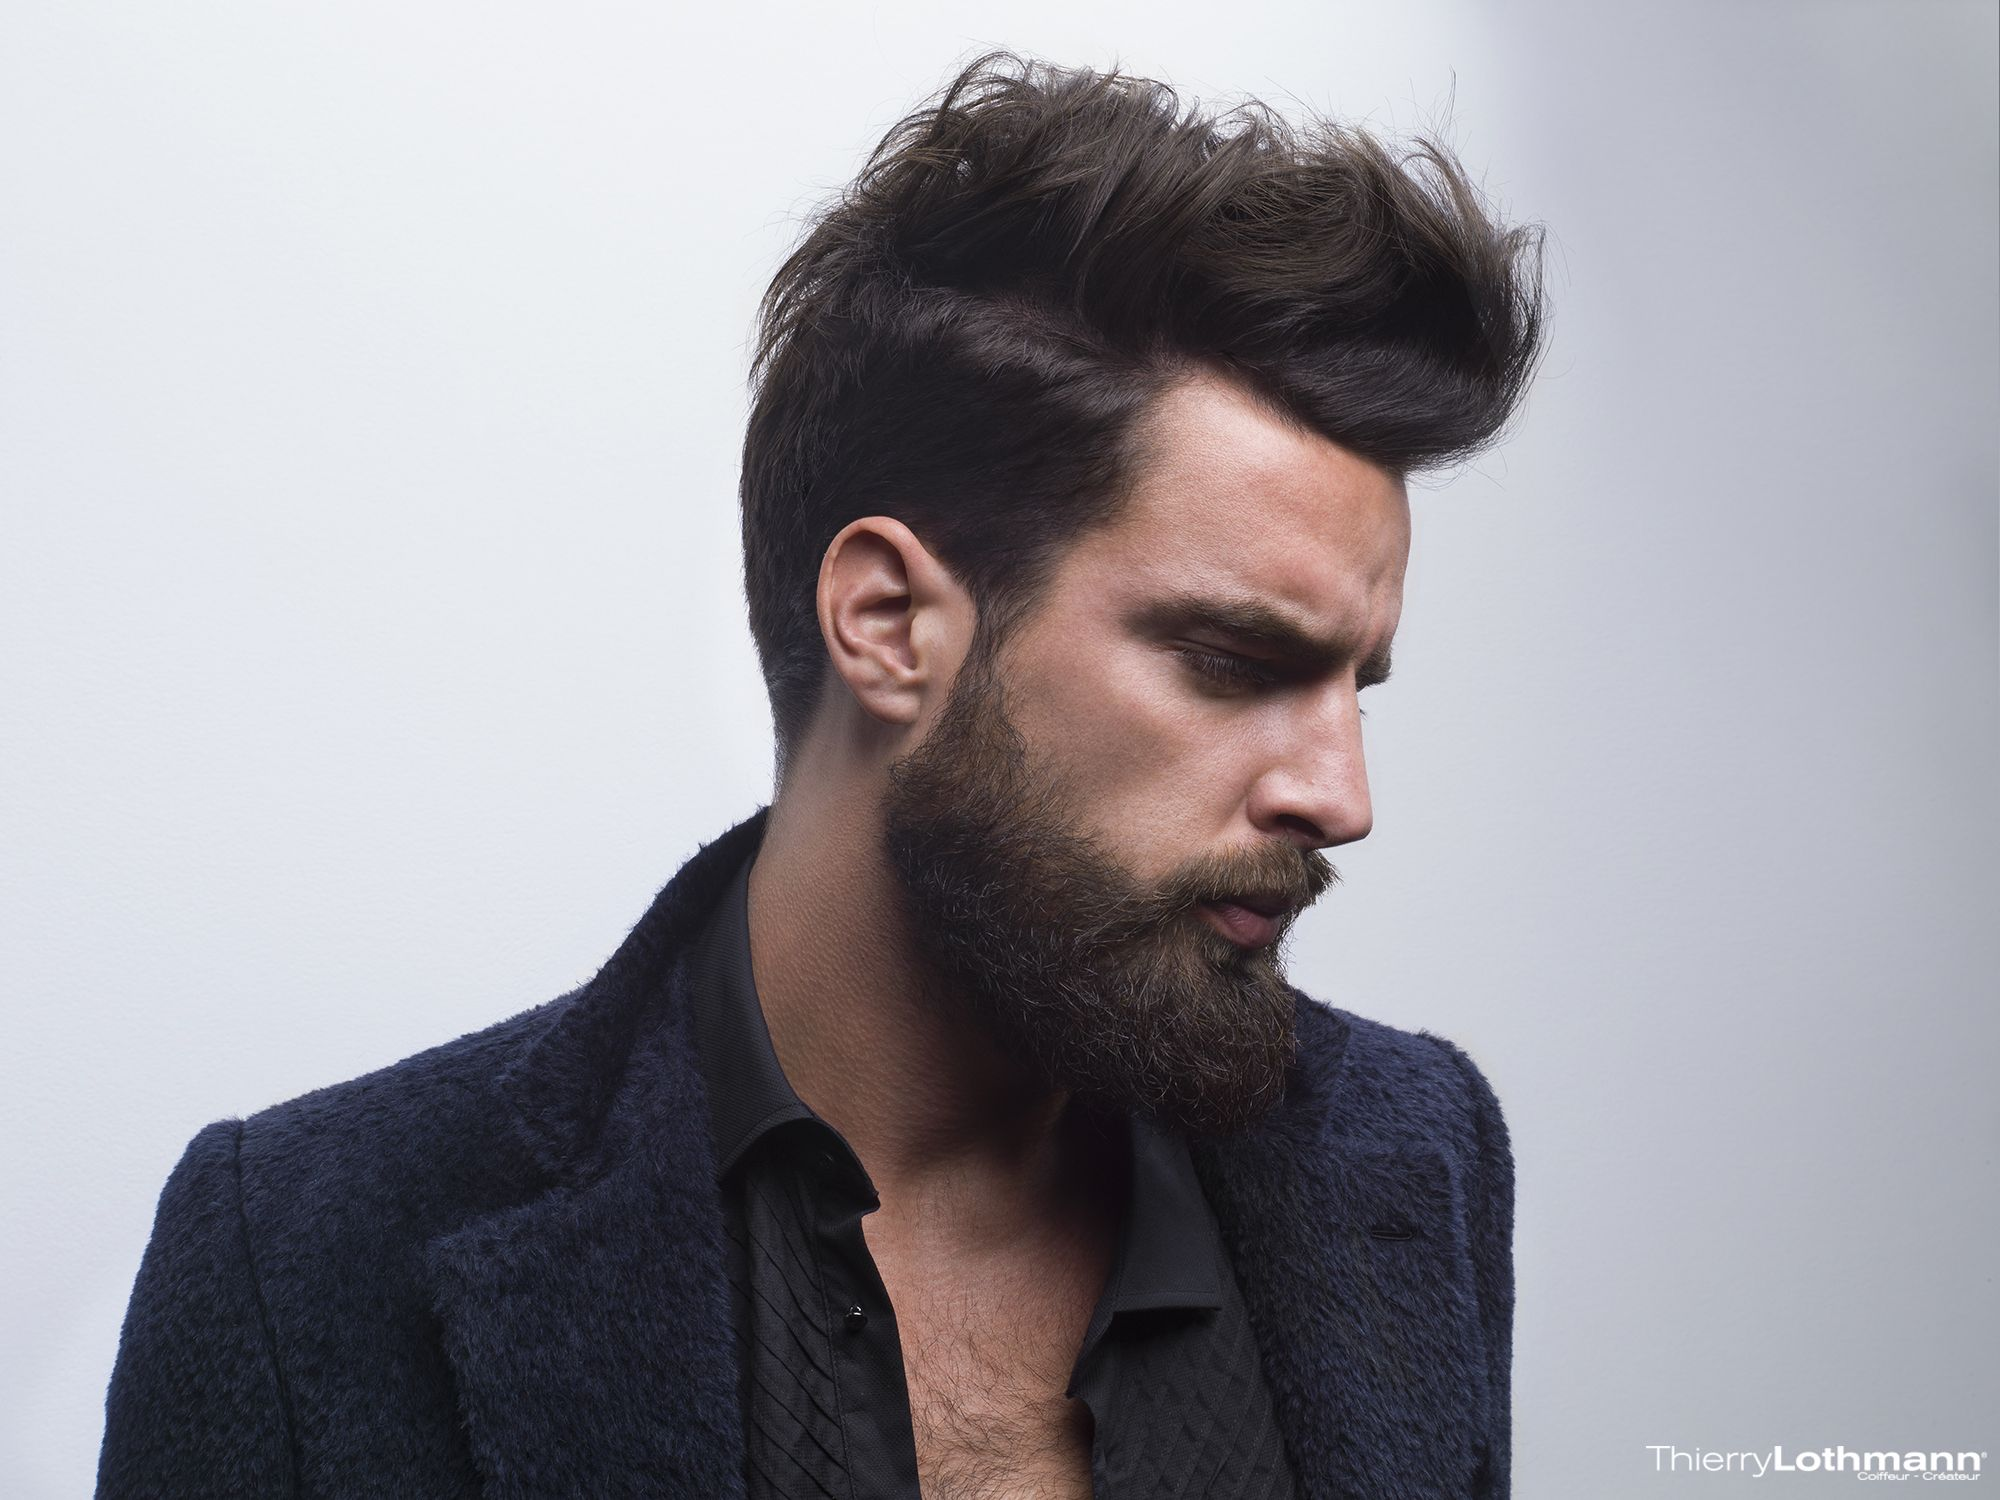 Coiffure Homme Plus Barbe Coupehomme Hipsterstyle Barbe Tendance Coiffure